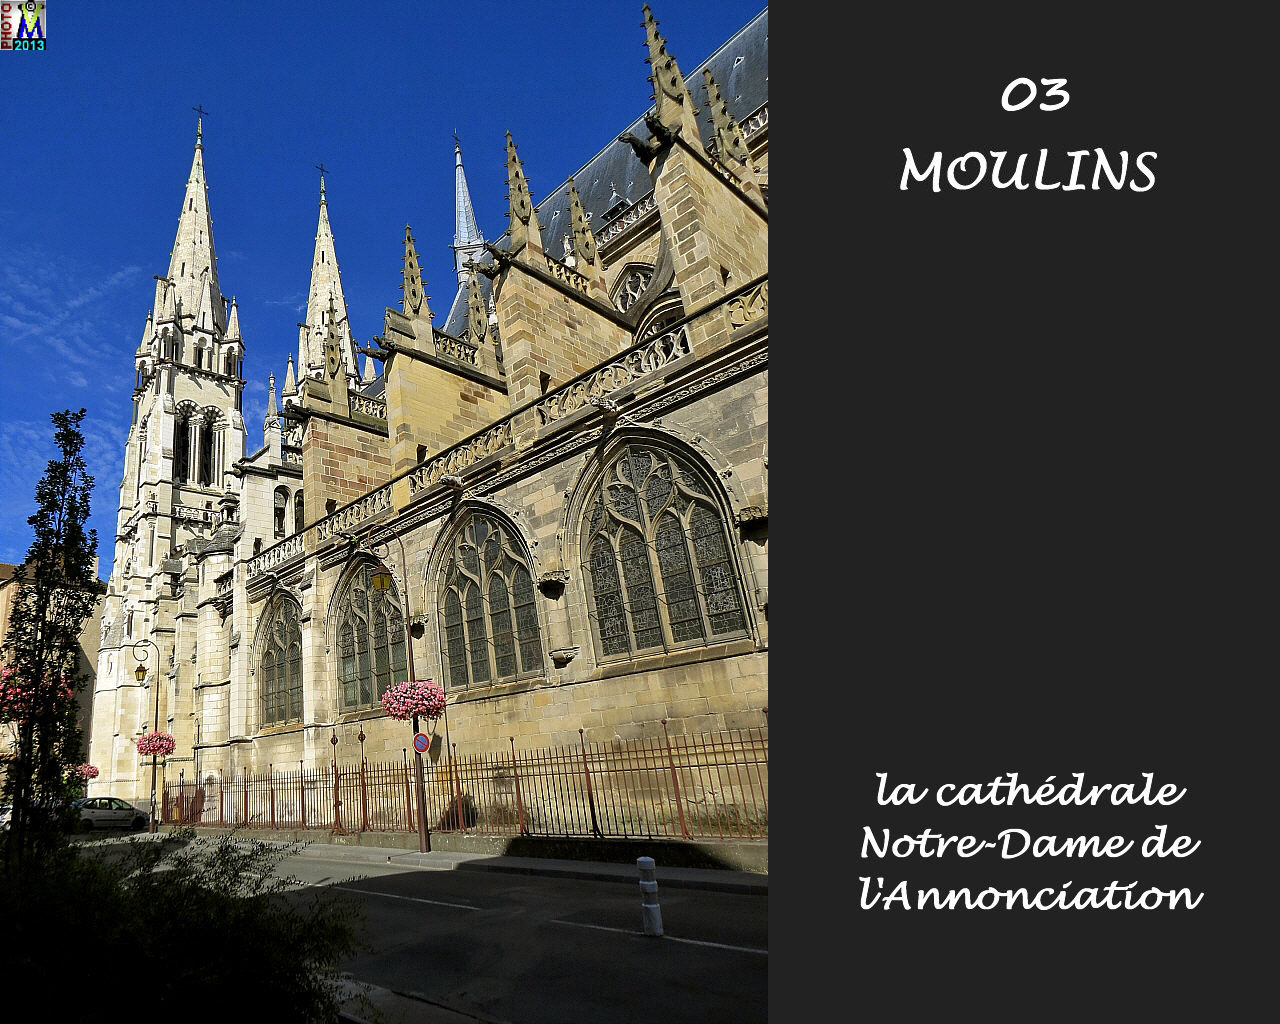 03MOULINS_cathedrale_106.jpg